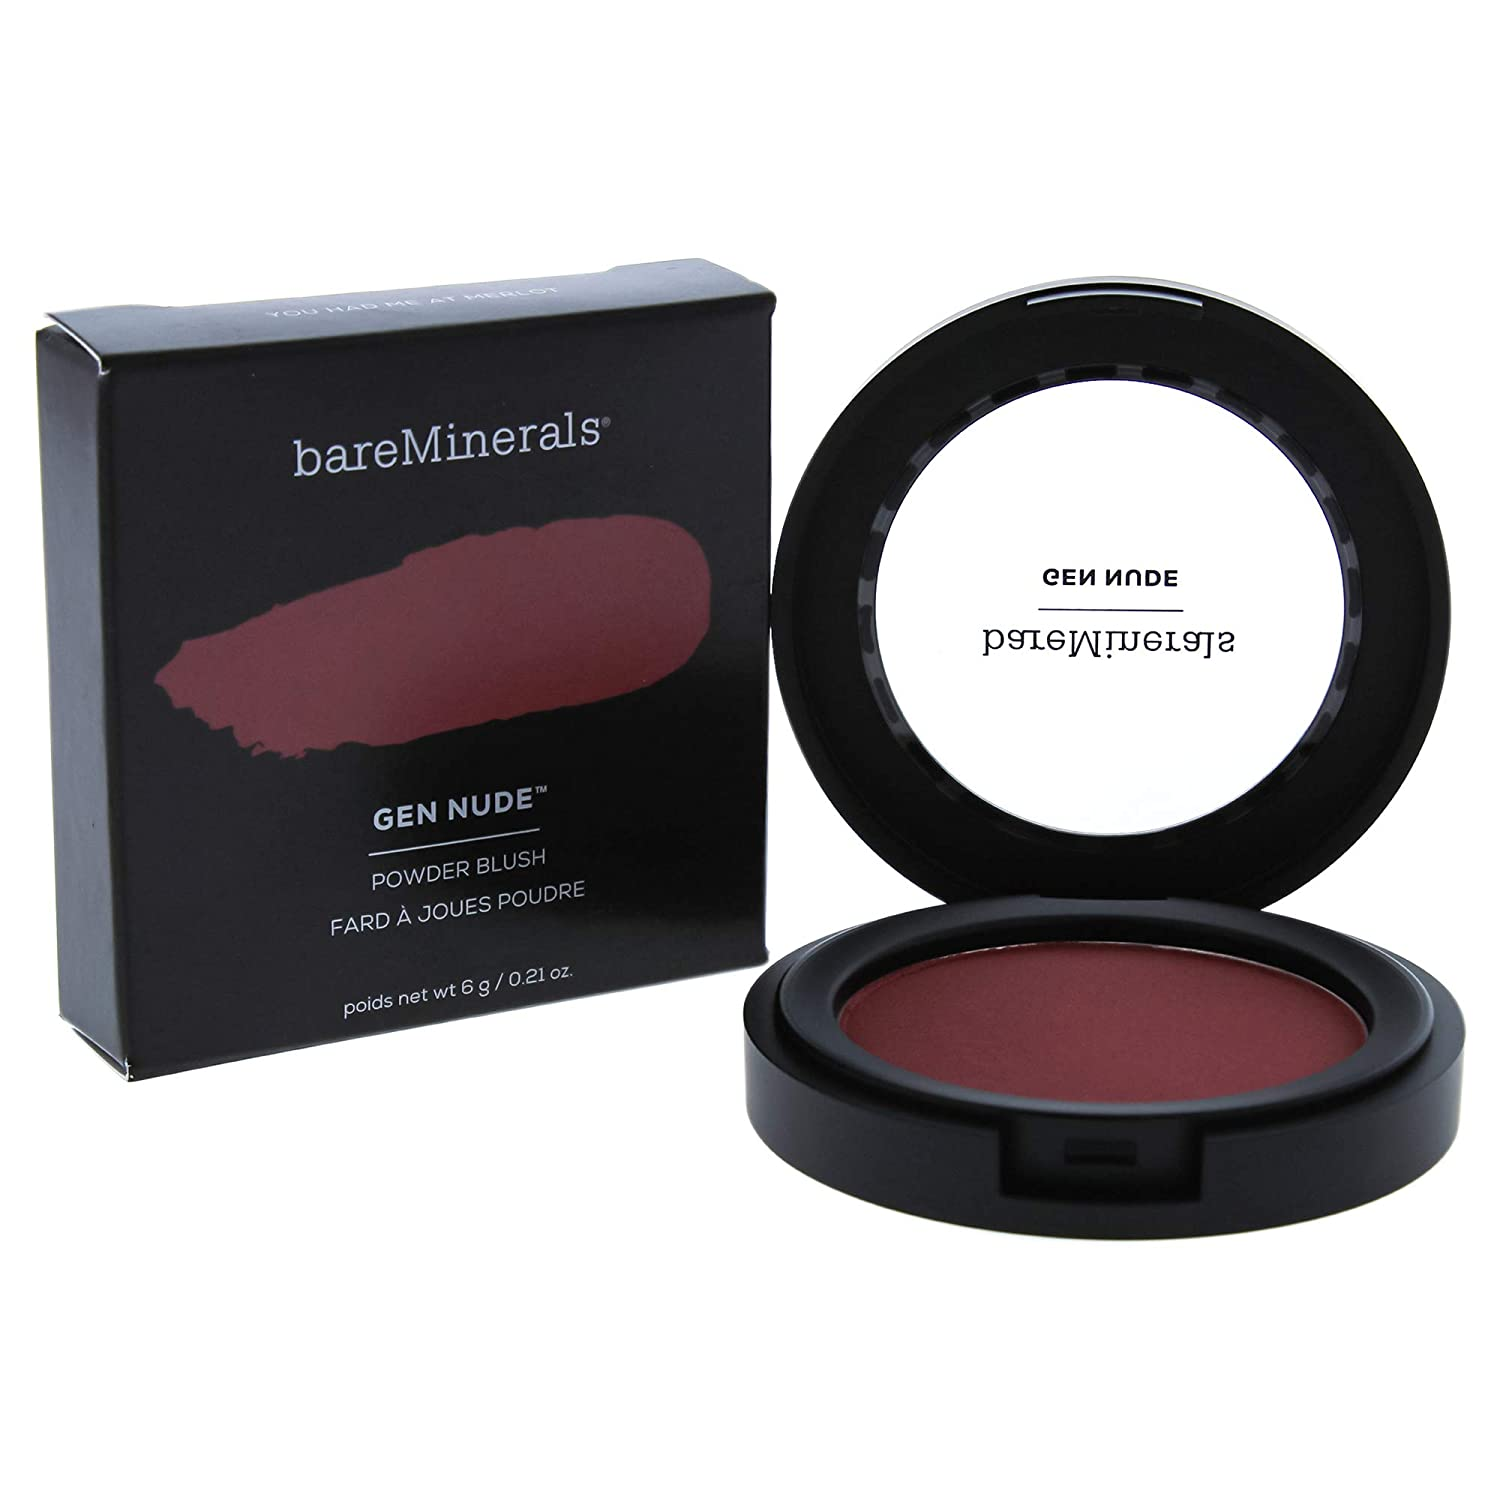 WHOLESALE BAREMINERALS GEN NUDE POWDER BLUSH - YOU HAD ME AT MERLOT - 50 PIECE LOT